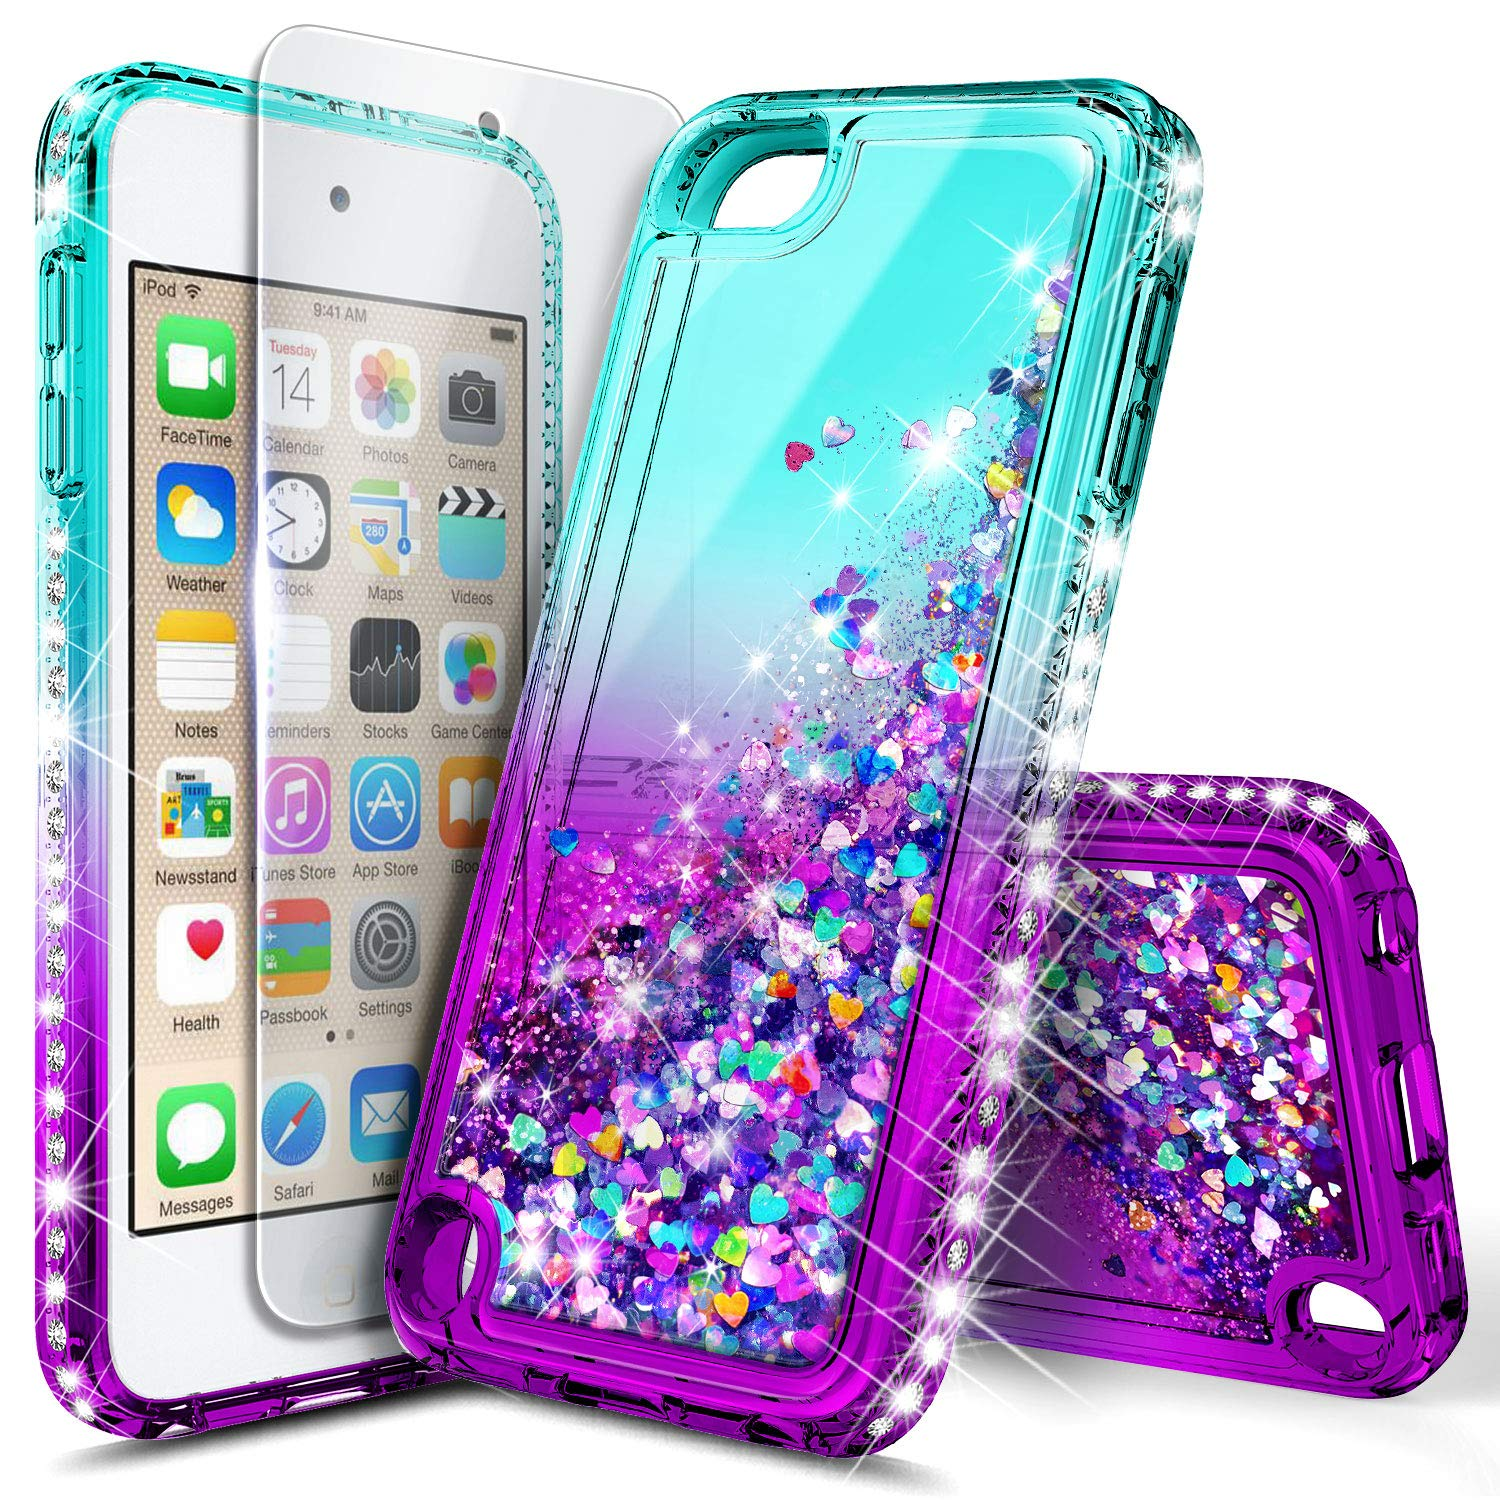 iPod Touch 7th /6th /5th Generation Case, iPod Touch 7/6/5 with Tempered Glass Screen Protector for Women Girls Kids, NageBee Glitter Sparkle Liquid ...